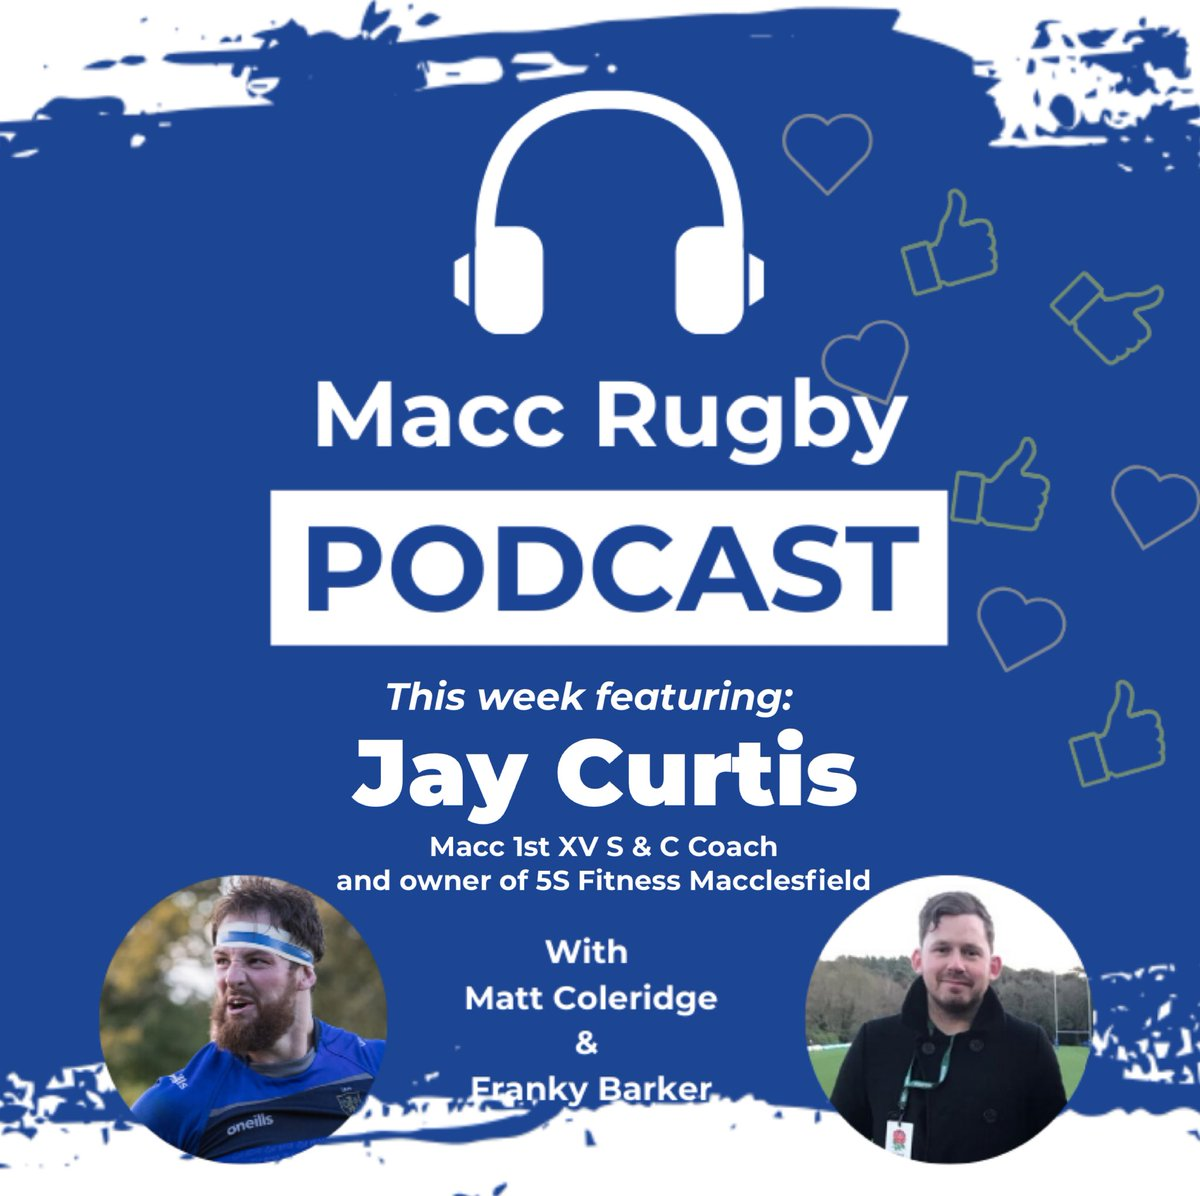 test Twitter Media - Here's a direct link to the latest pod with our S & C Coach Jay Curtis from @5sfitness and https://t.co/EkVaS2yUff: https://t.co/20owrSR7bV https://t.co/lBiluUIiqO